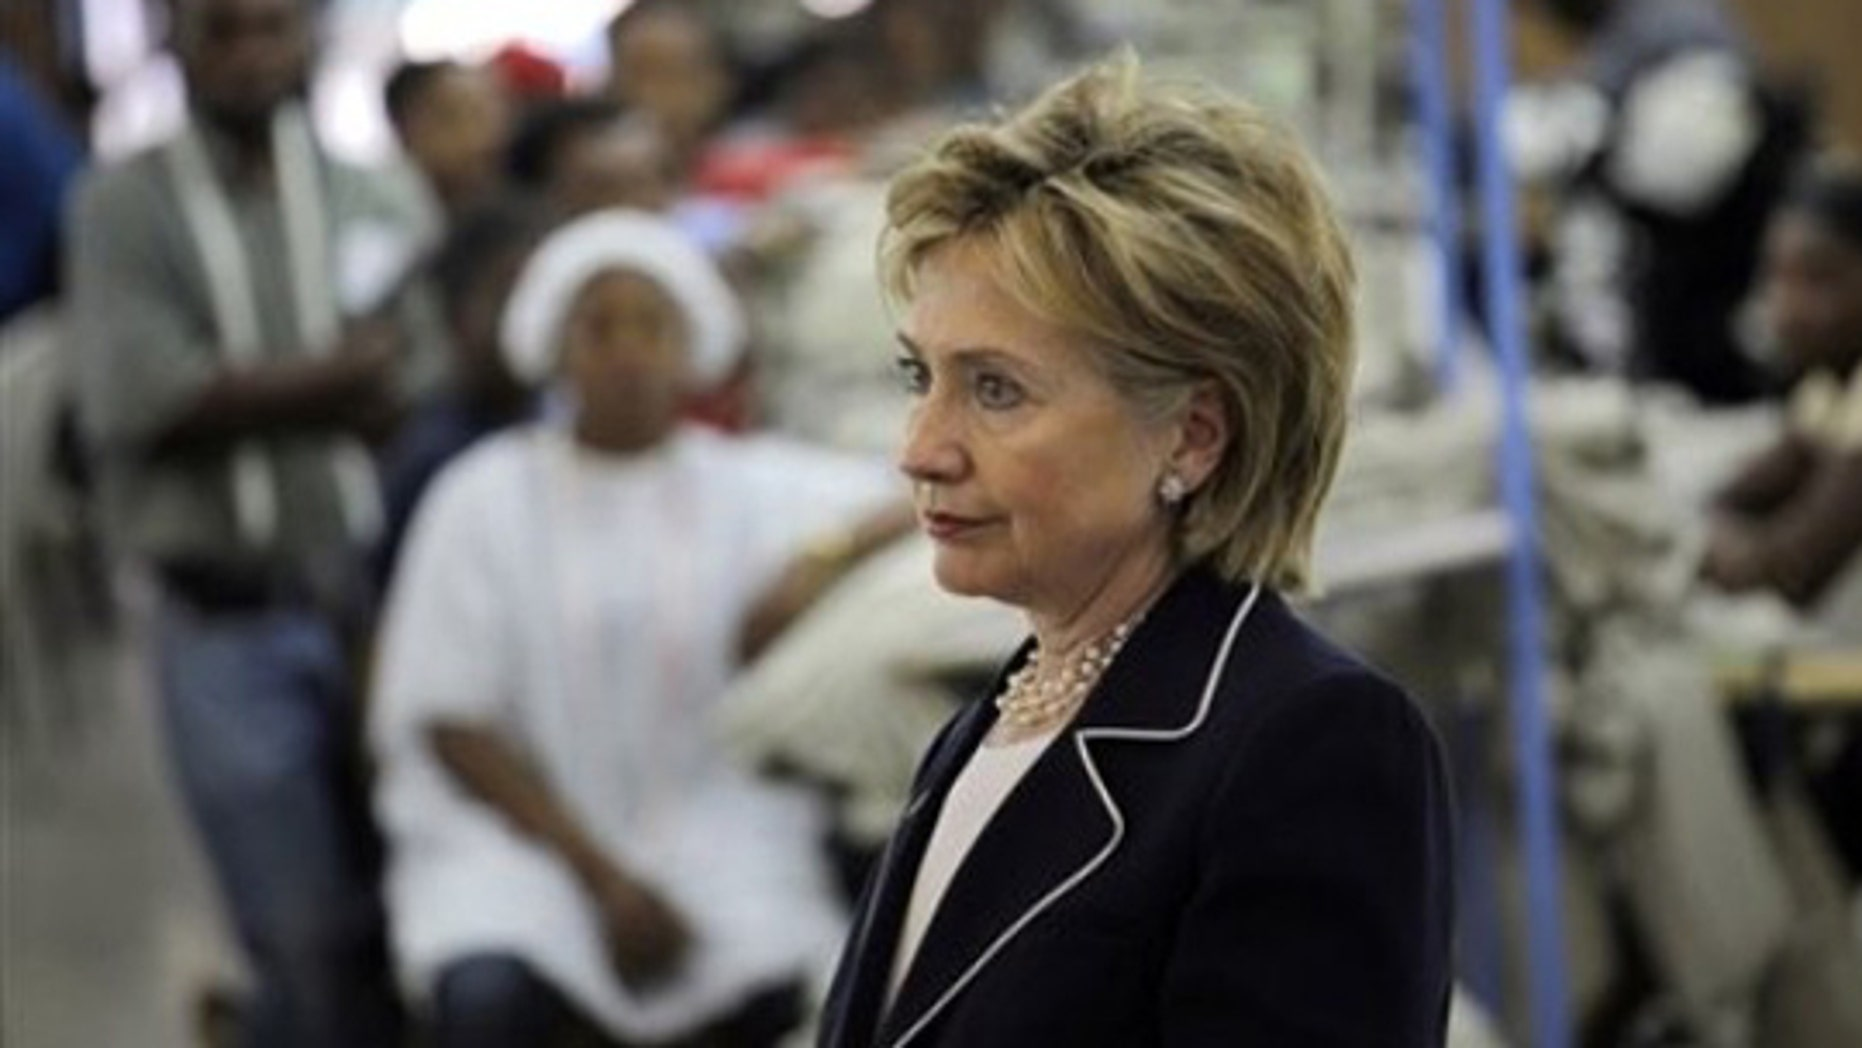 U.S. Secretary of State Hillary Clinton visits a factory in Port-au-Prince, Thursday, April 16, 2009. (AP)